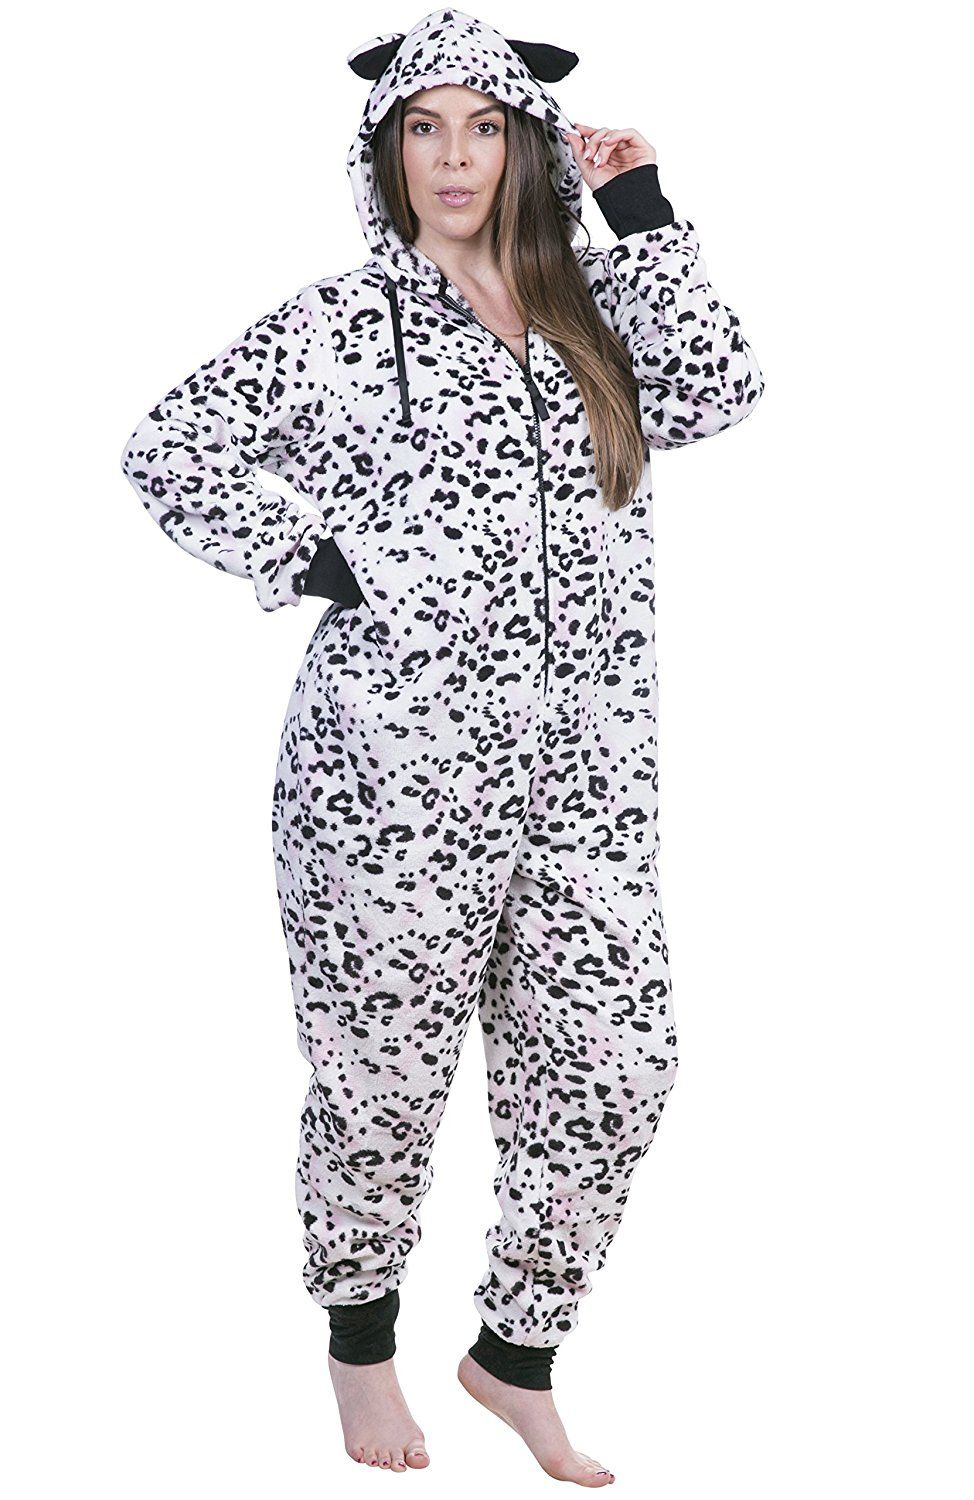 Plus Size Christmas Pajamas.3 Women S Plus Size Christmas Pajamas Christmas Costumes